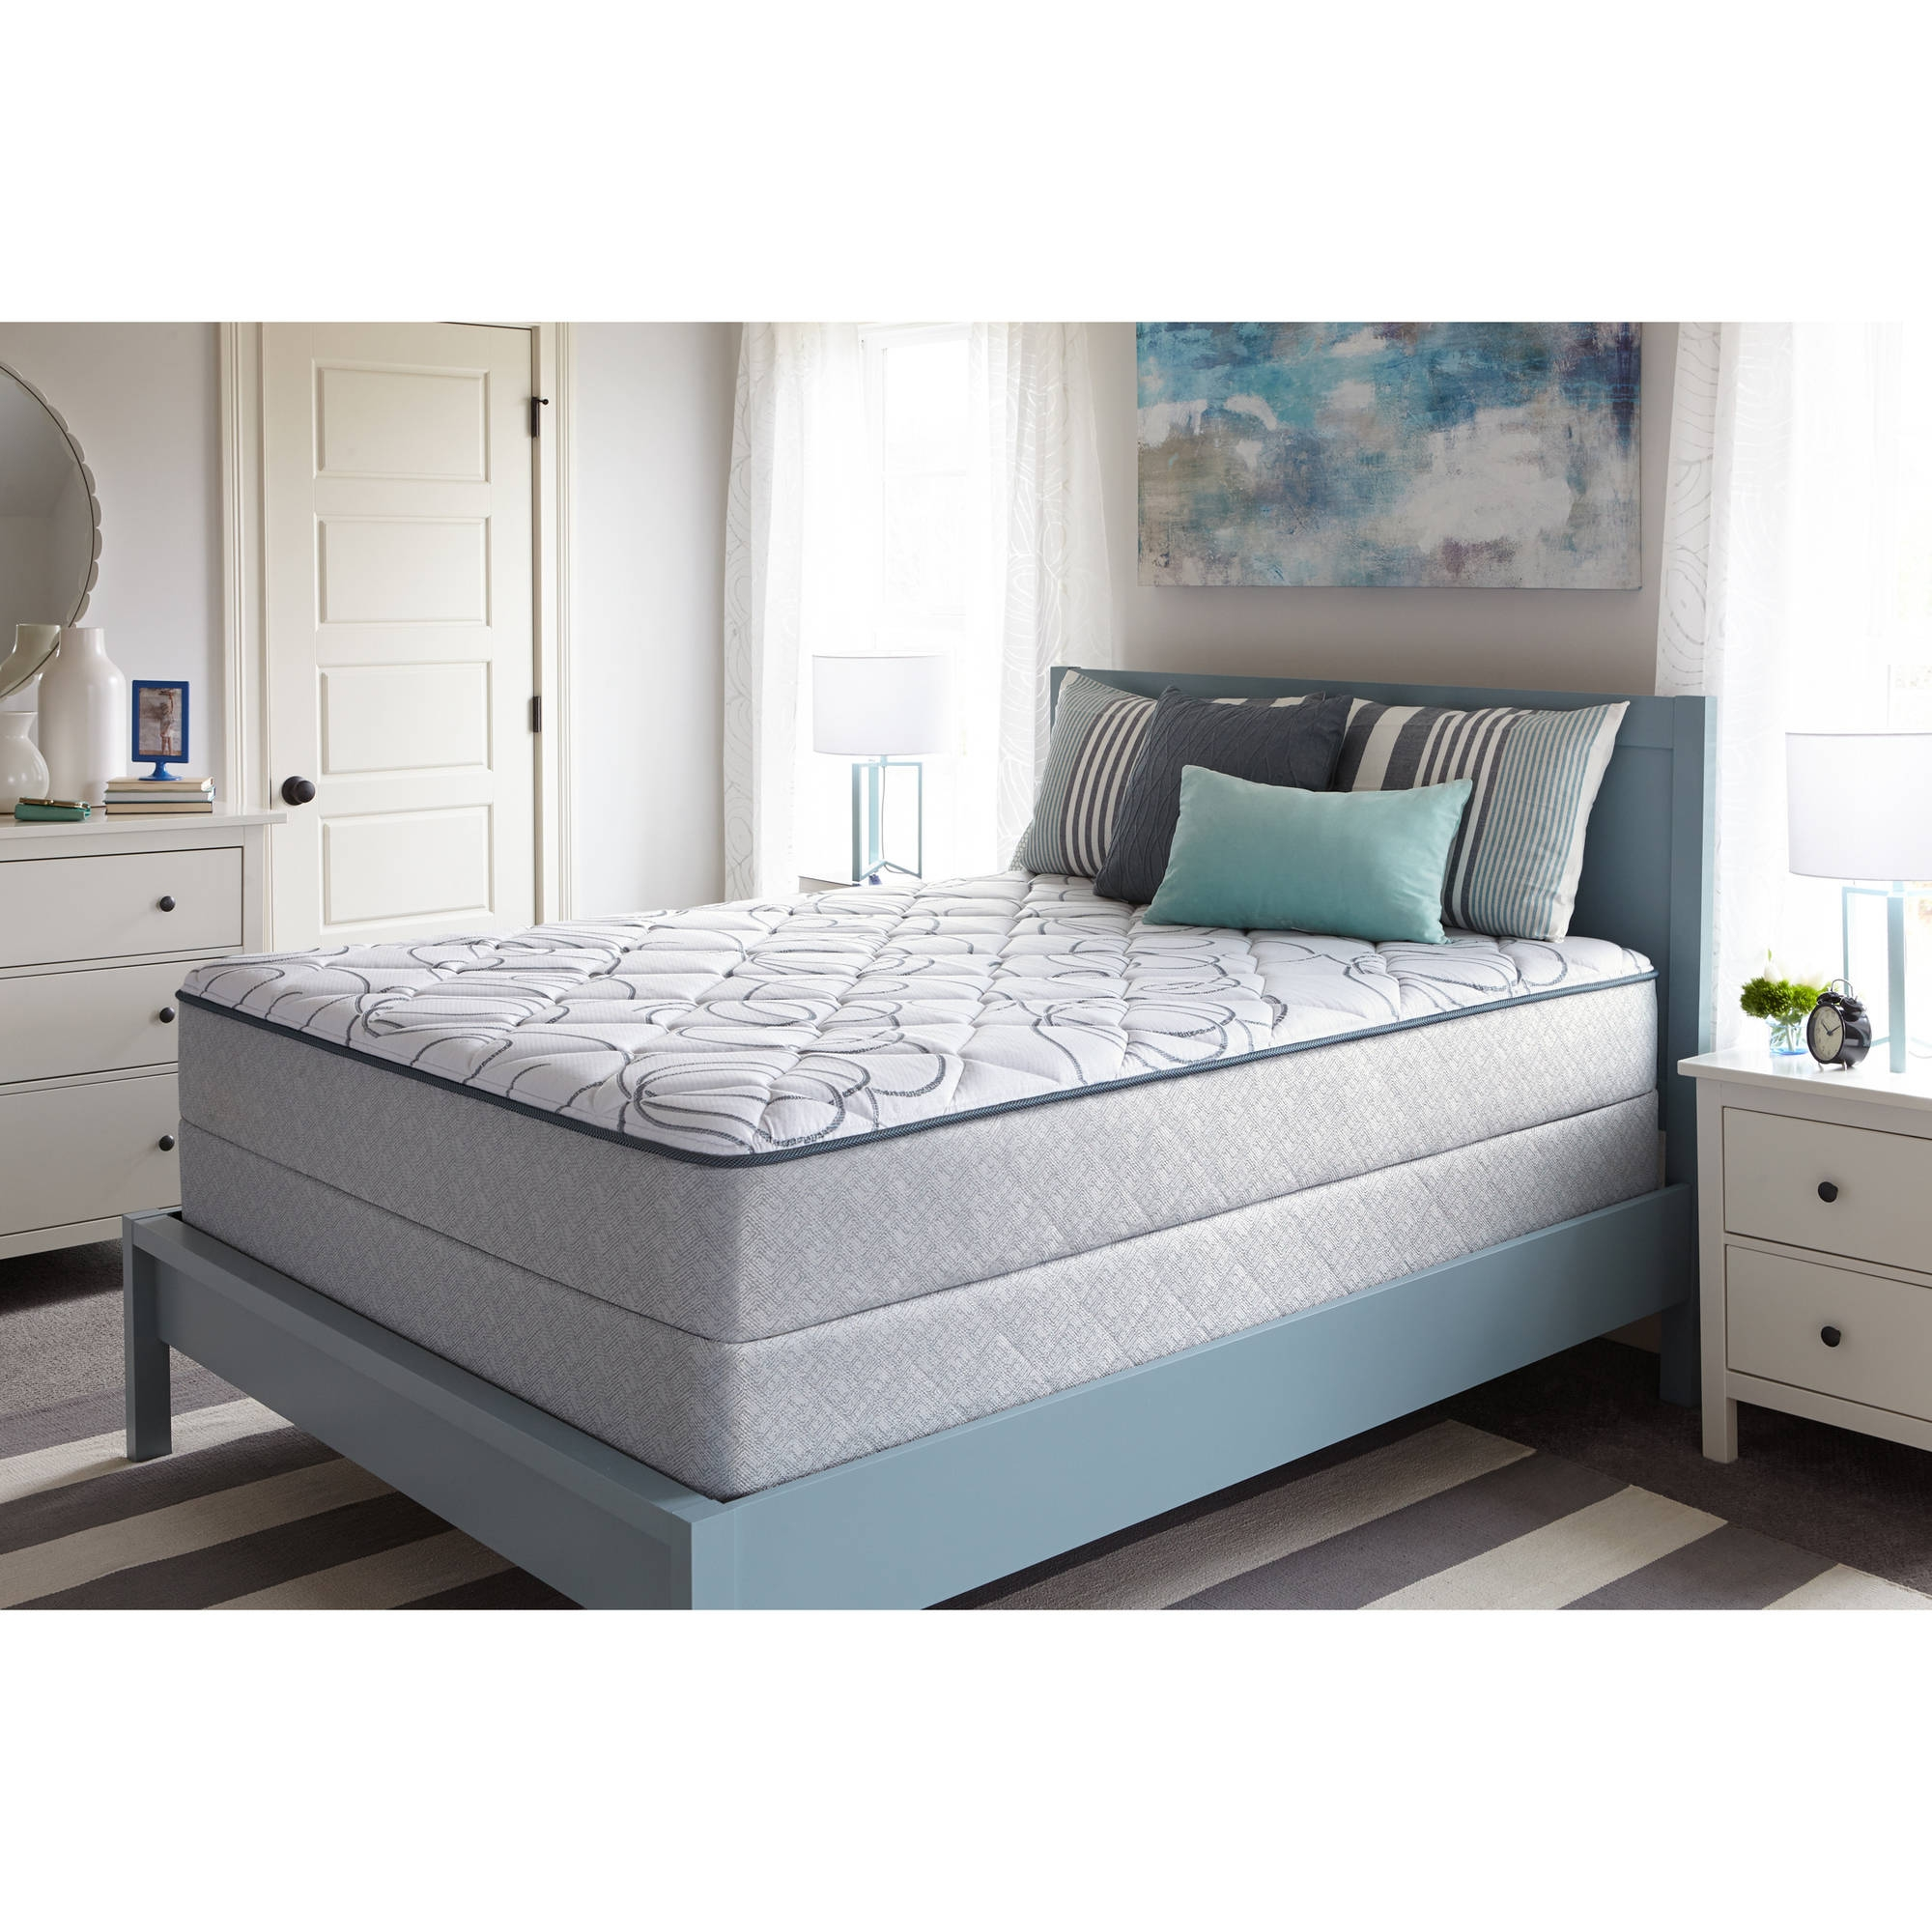 Queen Bed Frame Mattress Firm